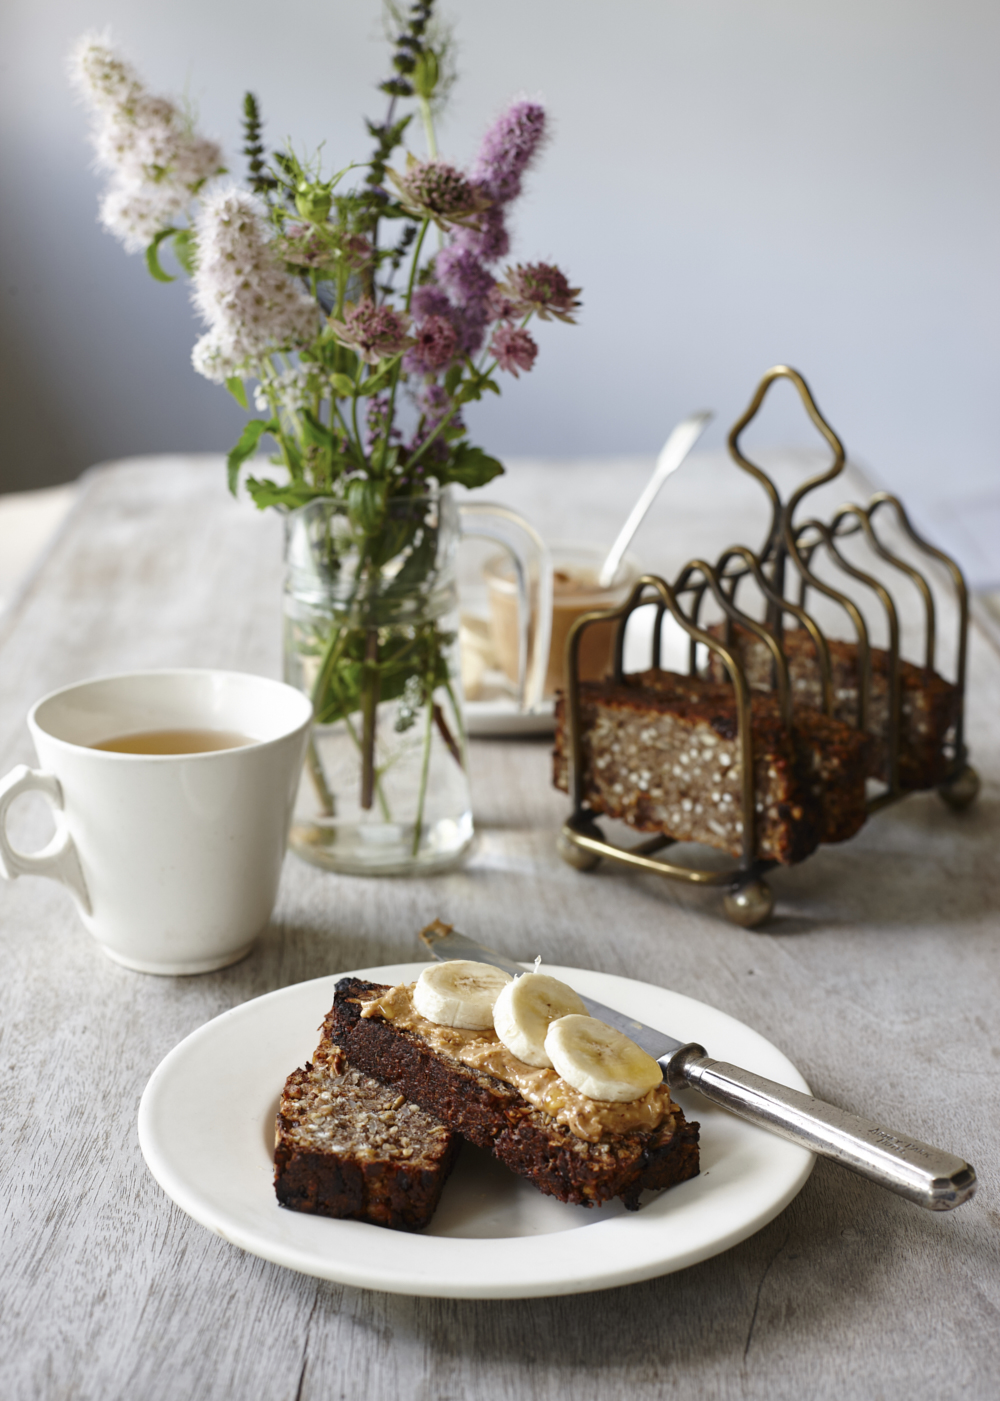 Freshly baked loaf topped with banana and peanut butter. Food photography by Joanna Henderson